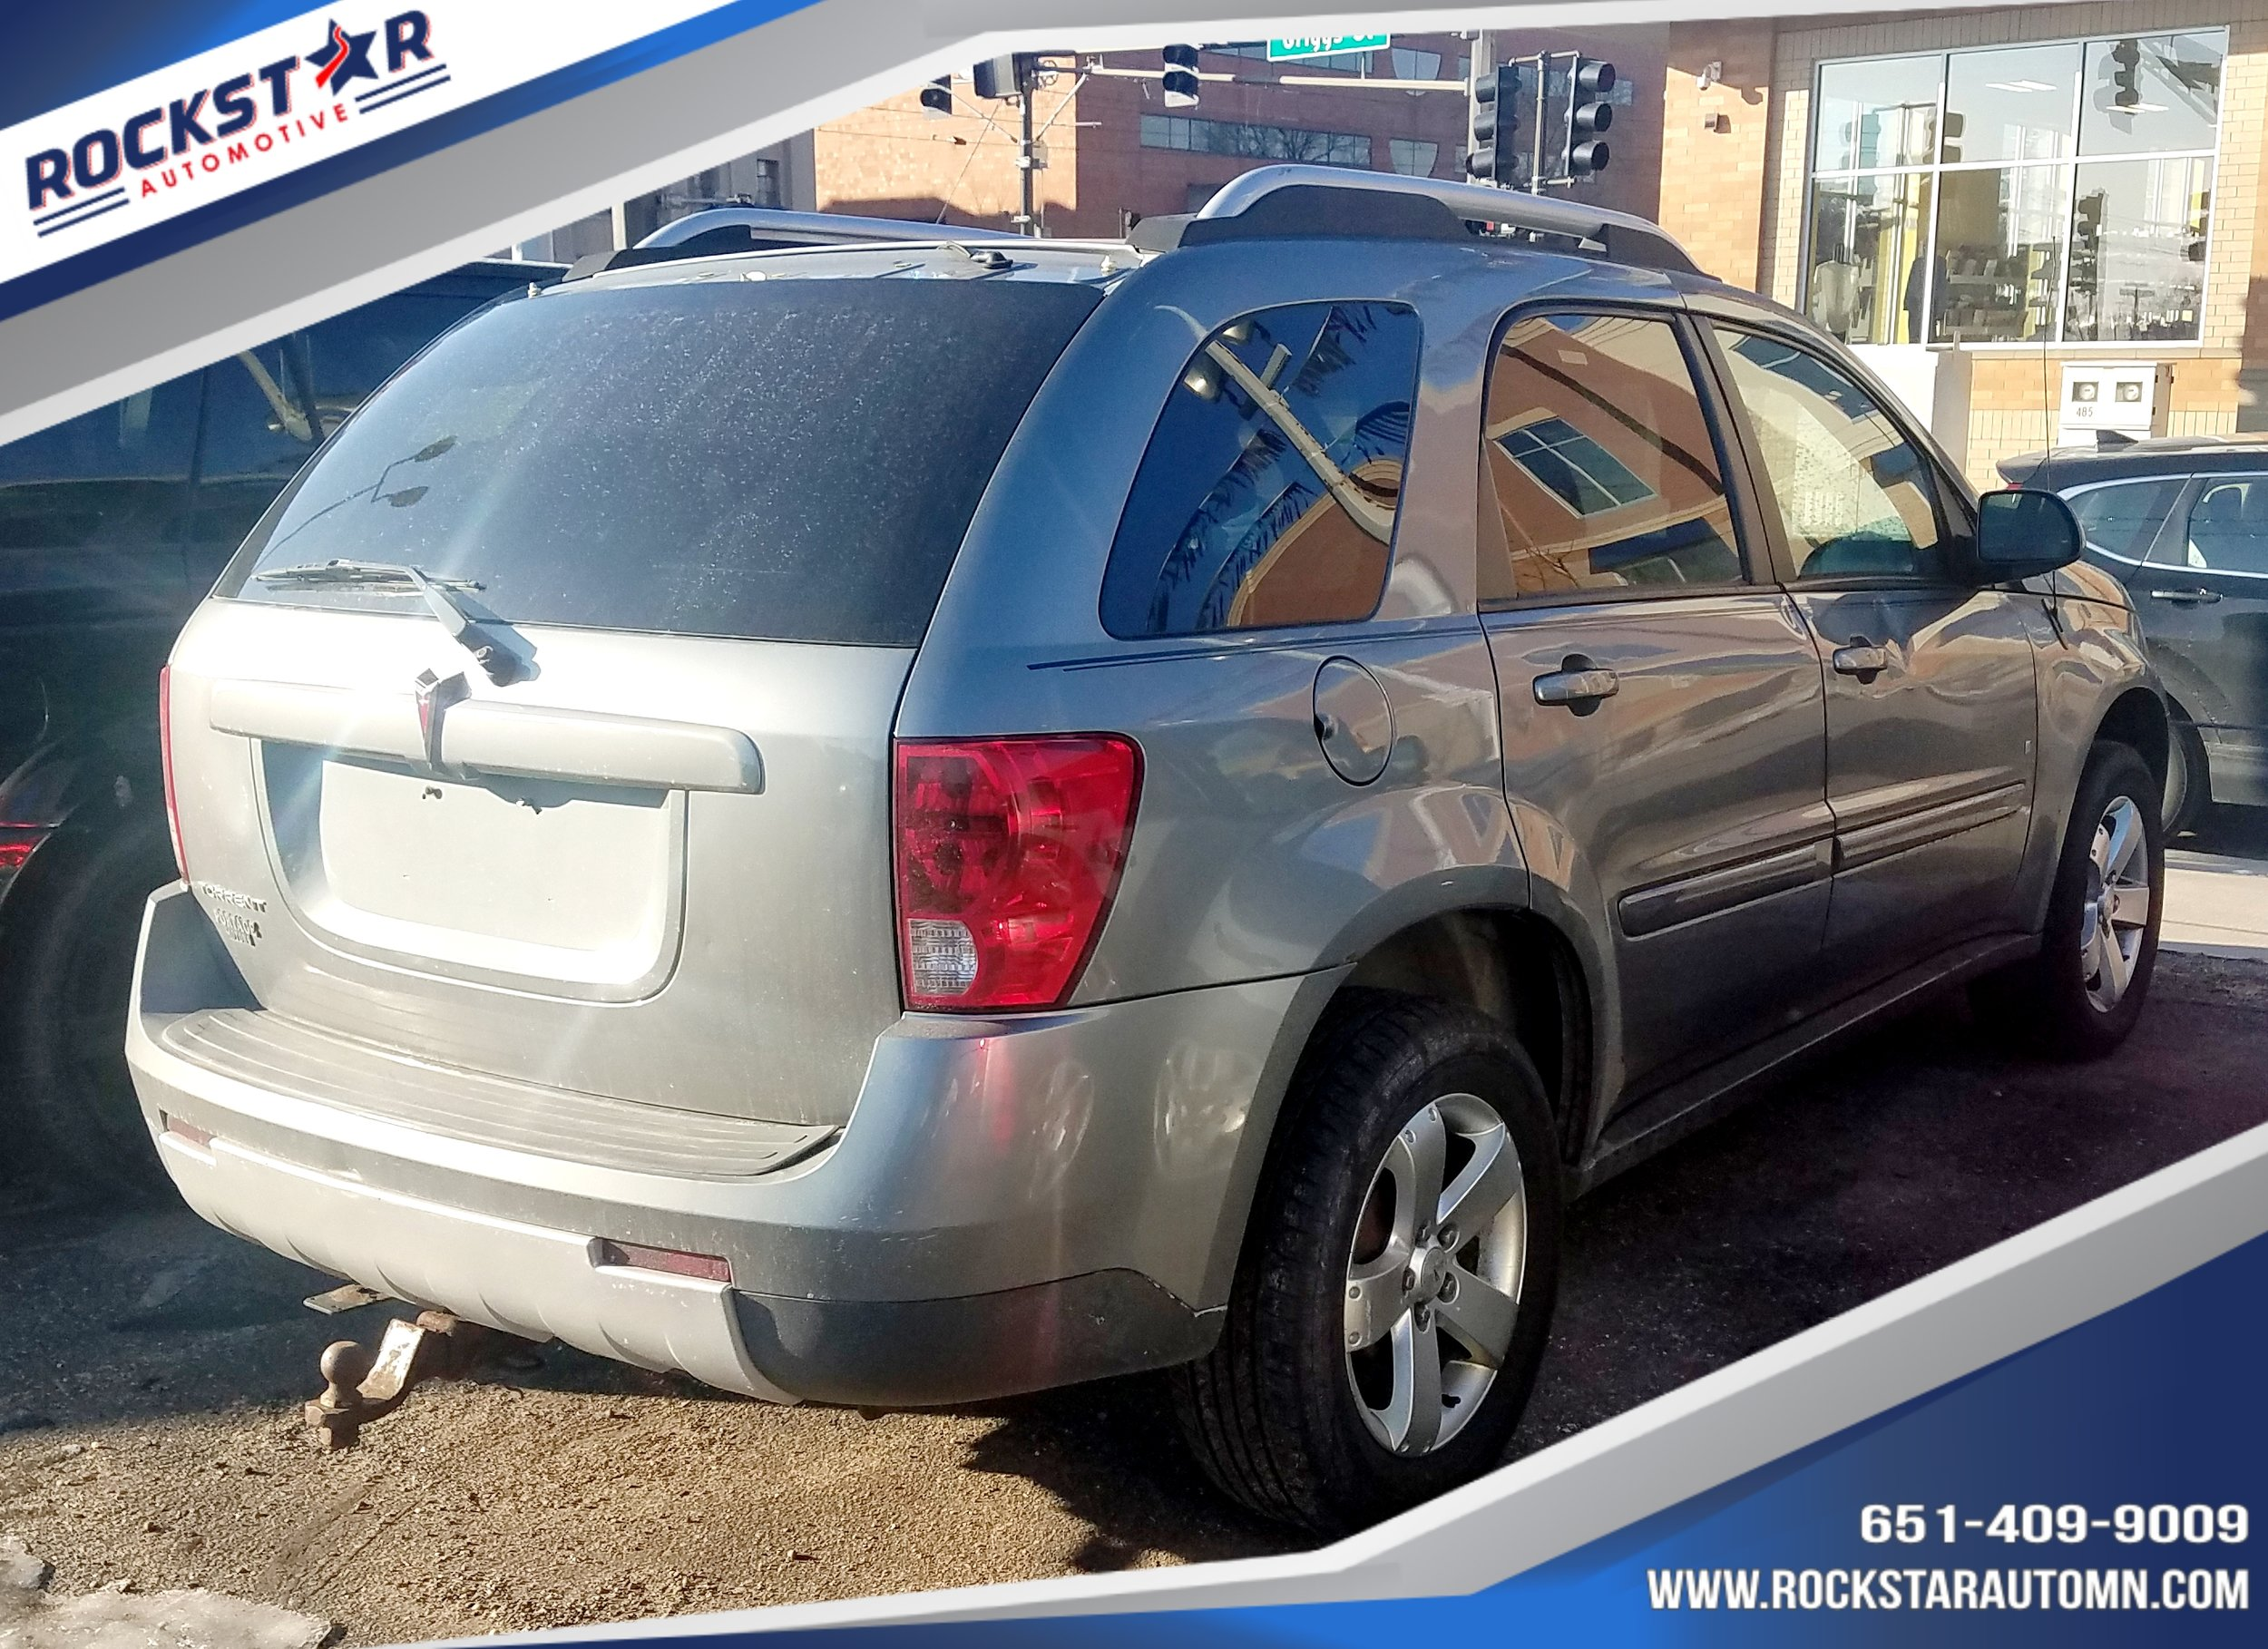 Used Cars for Sale St Paul Bad Credit